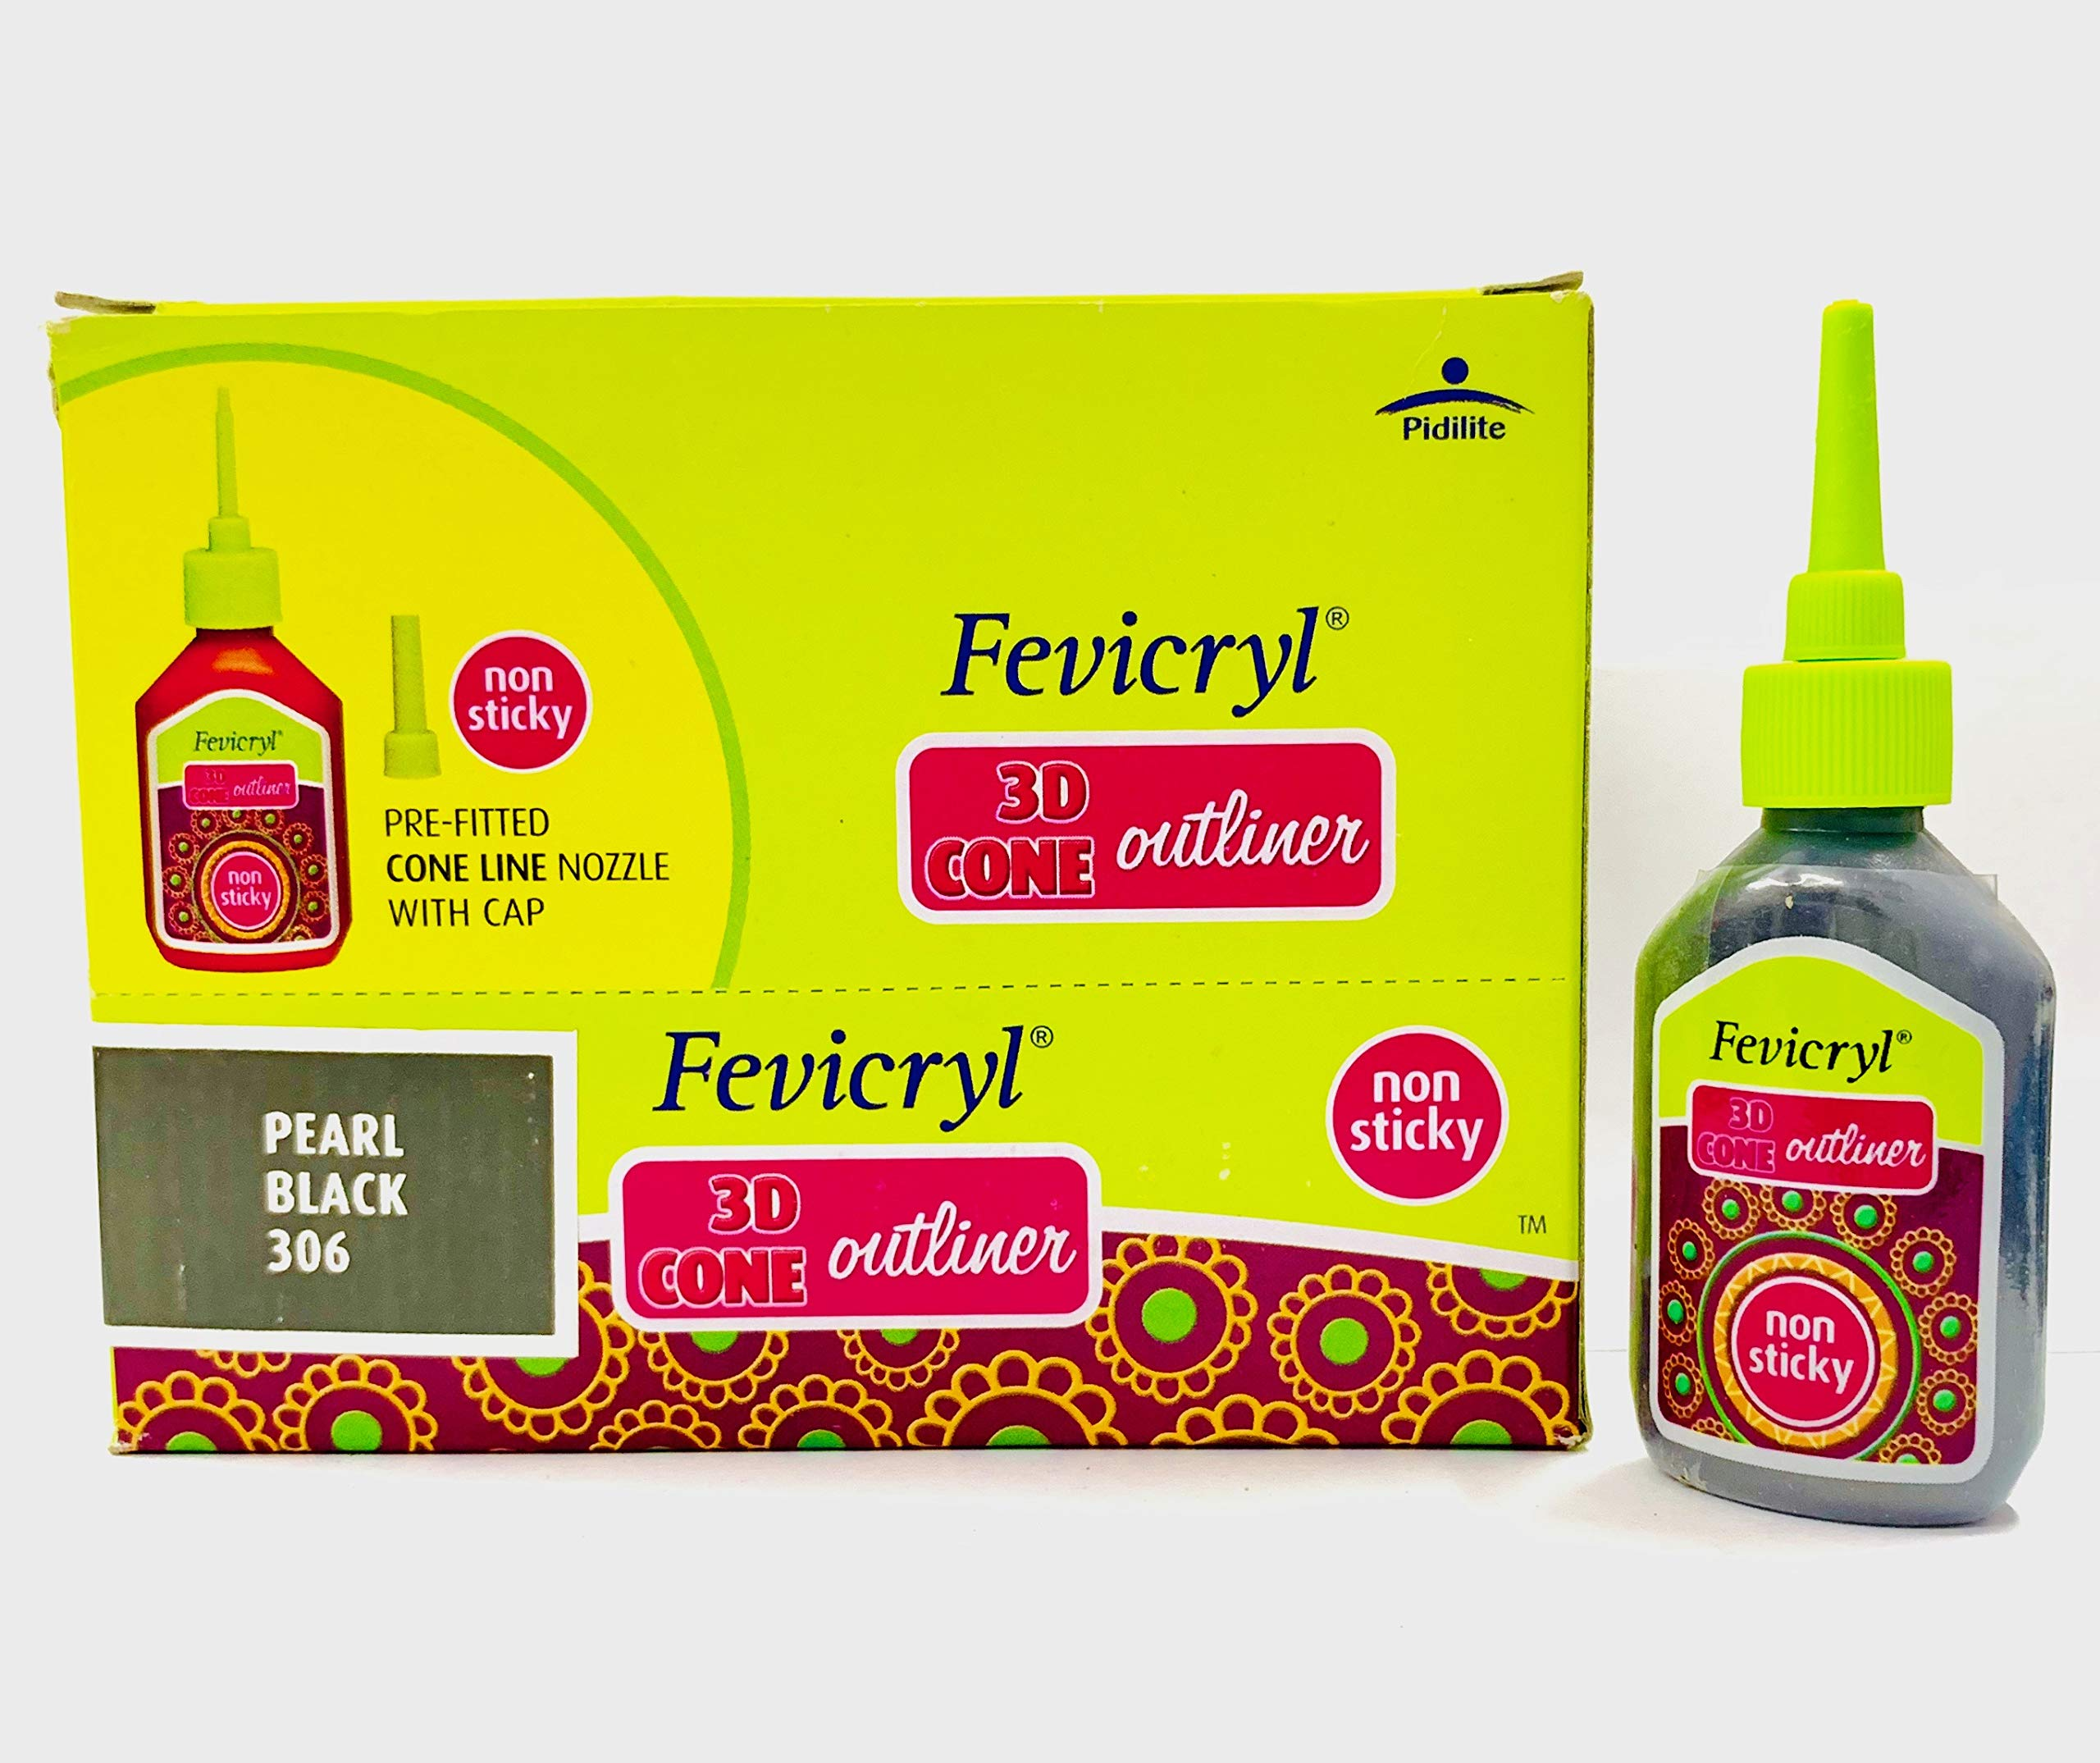 New Fevicryl Non Sticky 3D Cone Outliner Non-Toxic with Pre-Fitted Cone Line Nozzle with Cap (306) - 20ml Bottle -10 Bottle Pack - Colour - Pearl Black- with Free 3D Keyring by Fevicryl